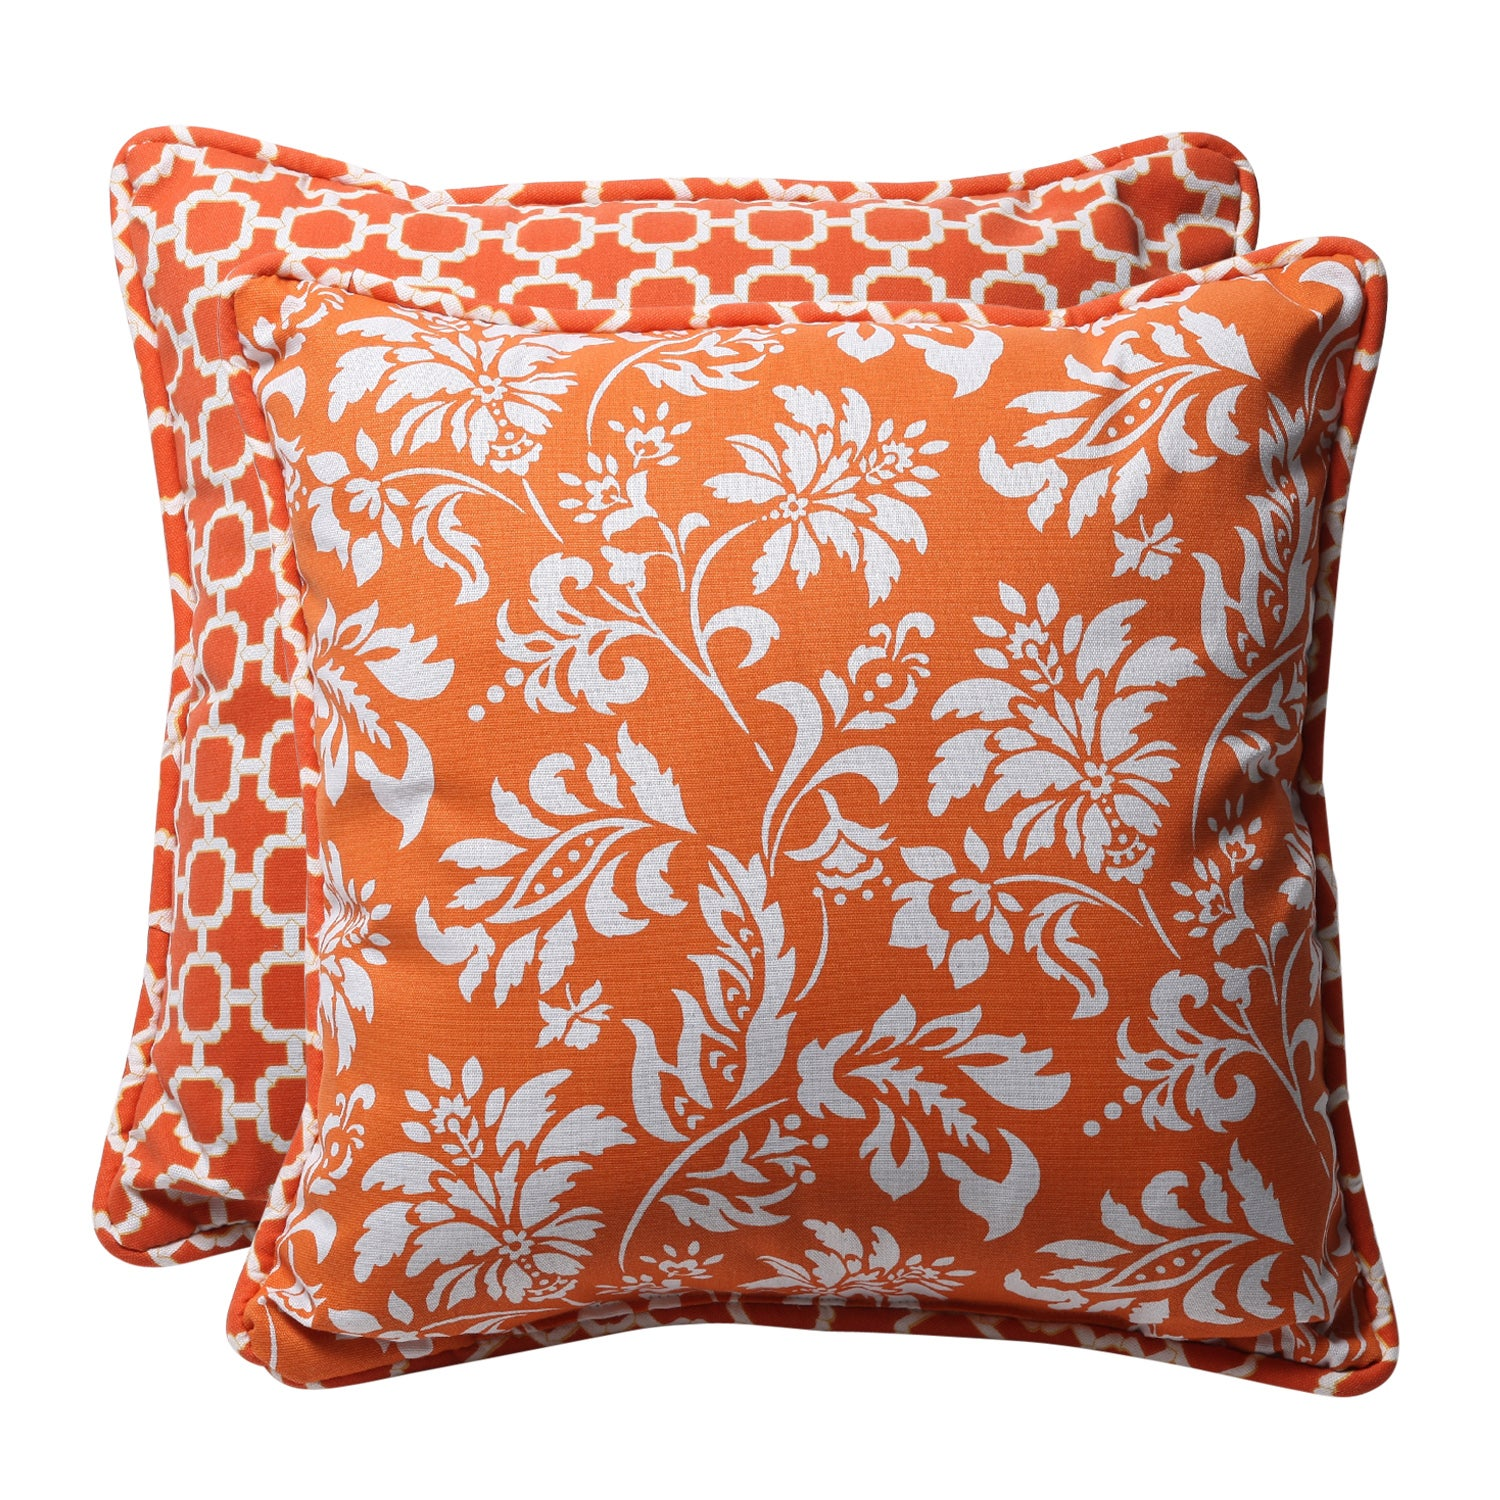 Decorative Orange/ White Geometric/ Floral Square Reversible Outdoor Toss Pillows (Set of 2)